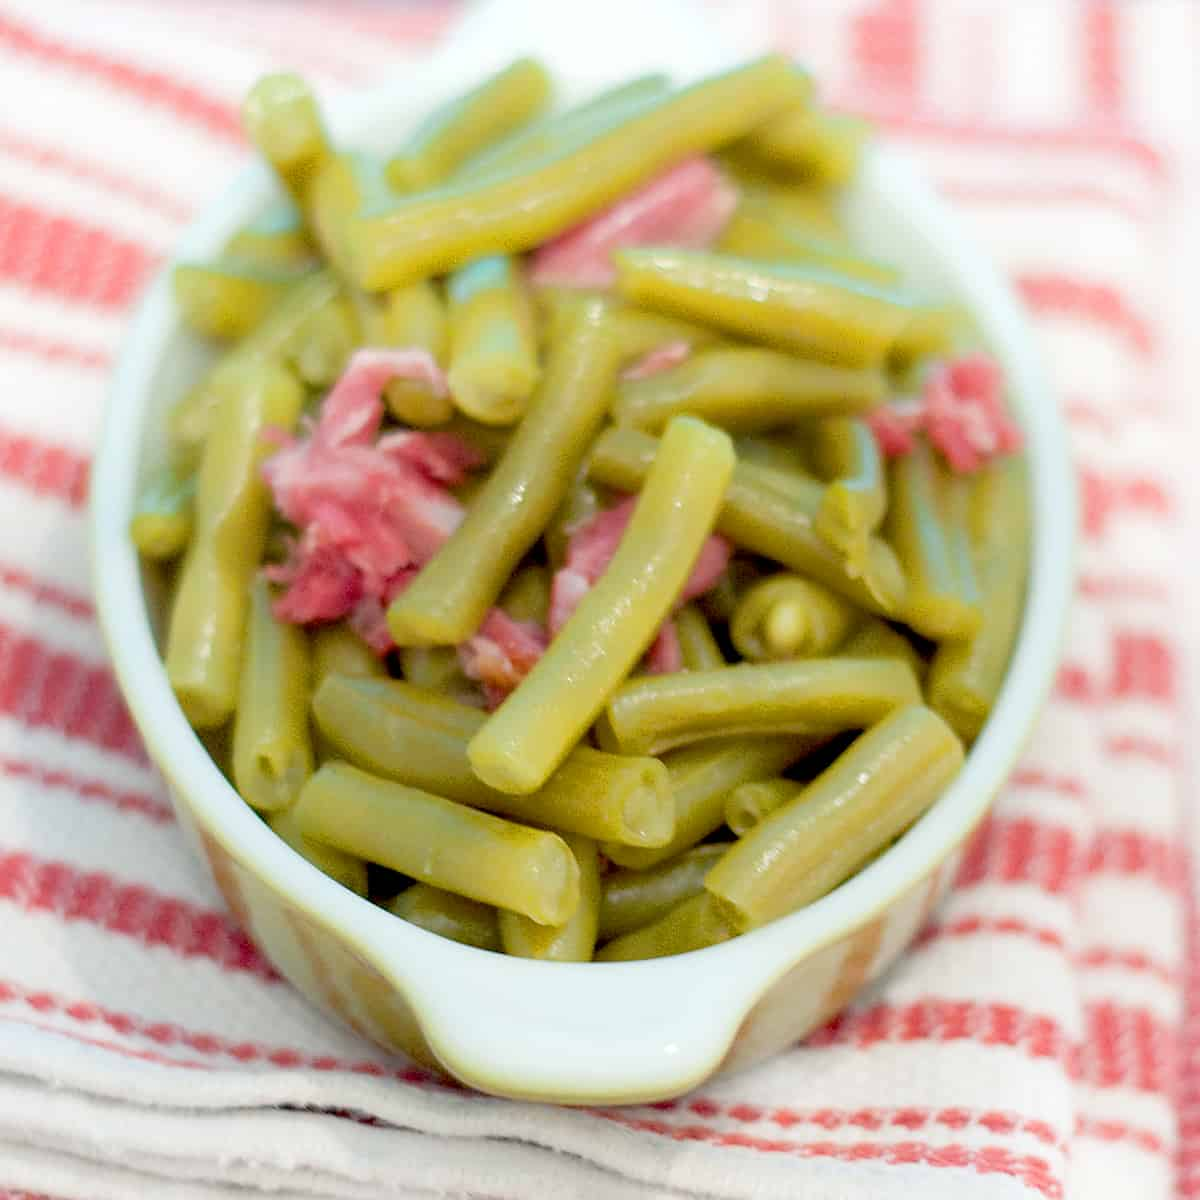 Old Fashioned Southern Green Beans with smoky bacon in a small bowl resting on a kitchen towel.